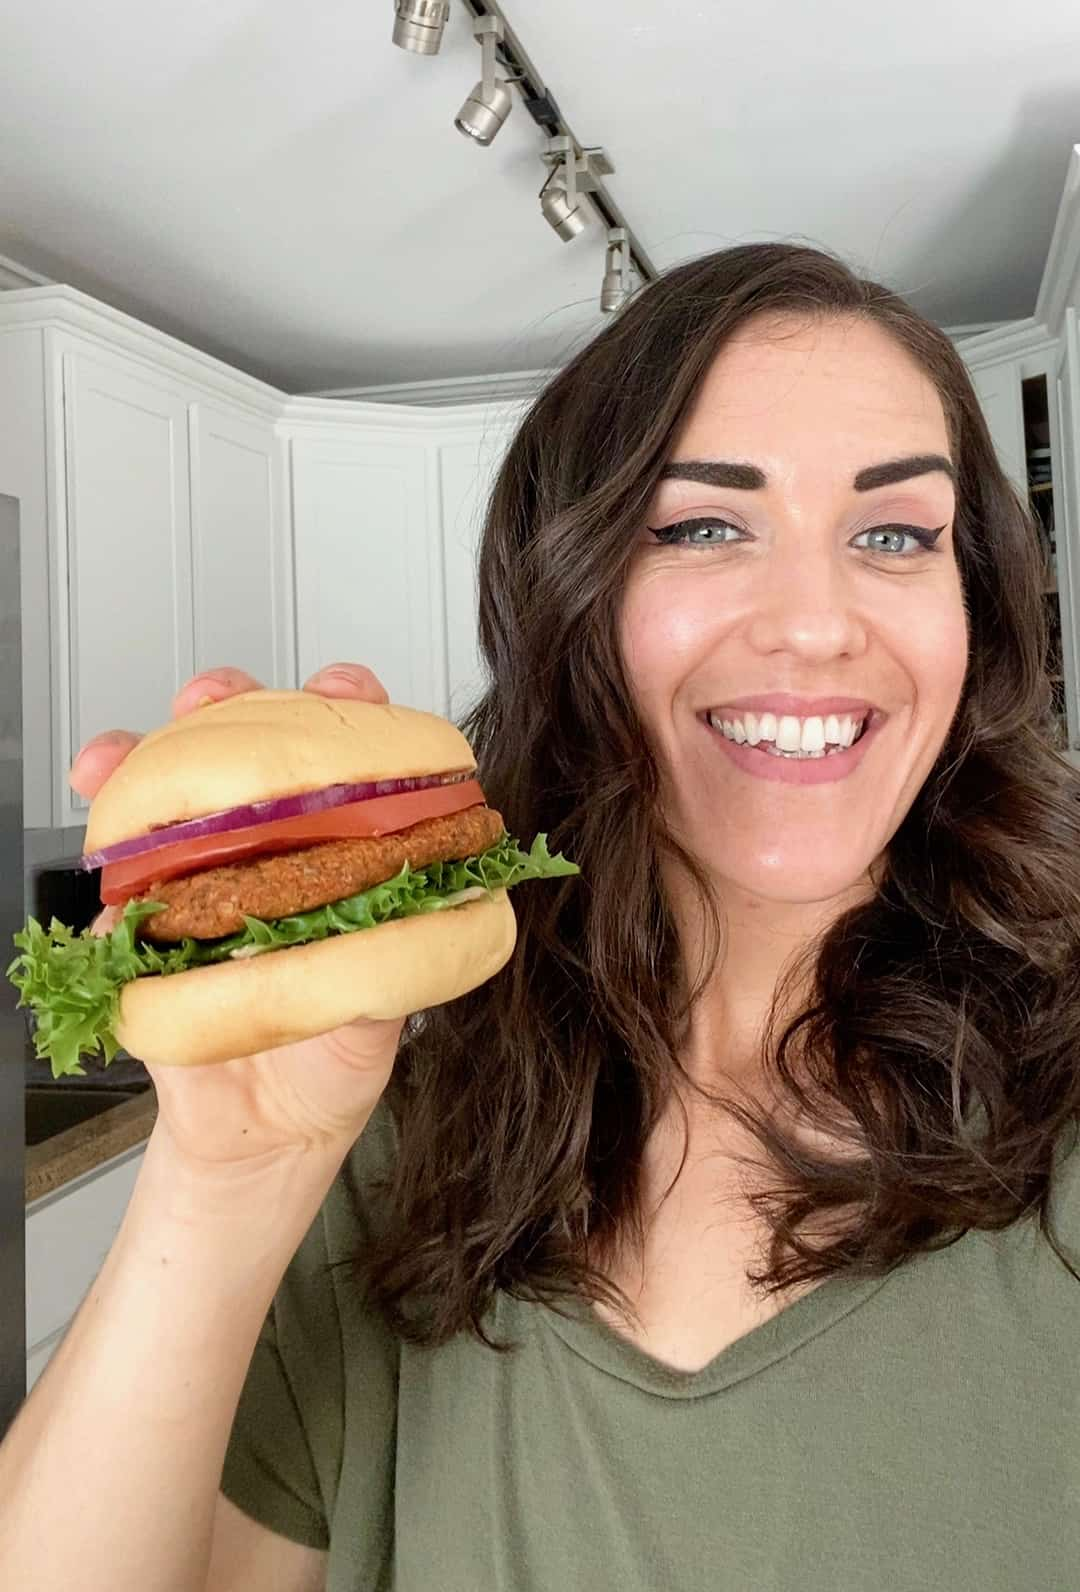 Dark haired woman with green shirt smiling and holding sprouted lentil burger with bun